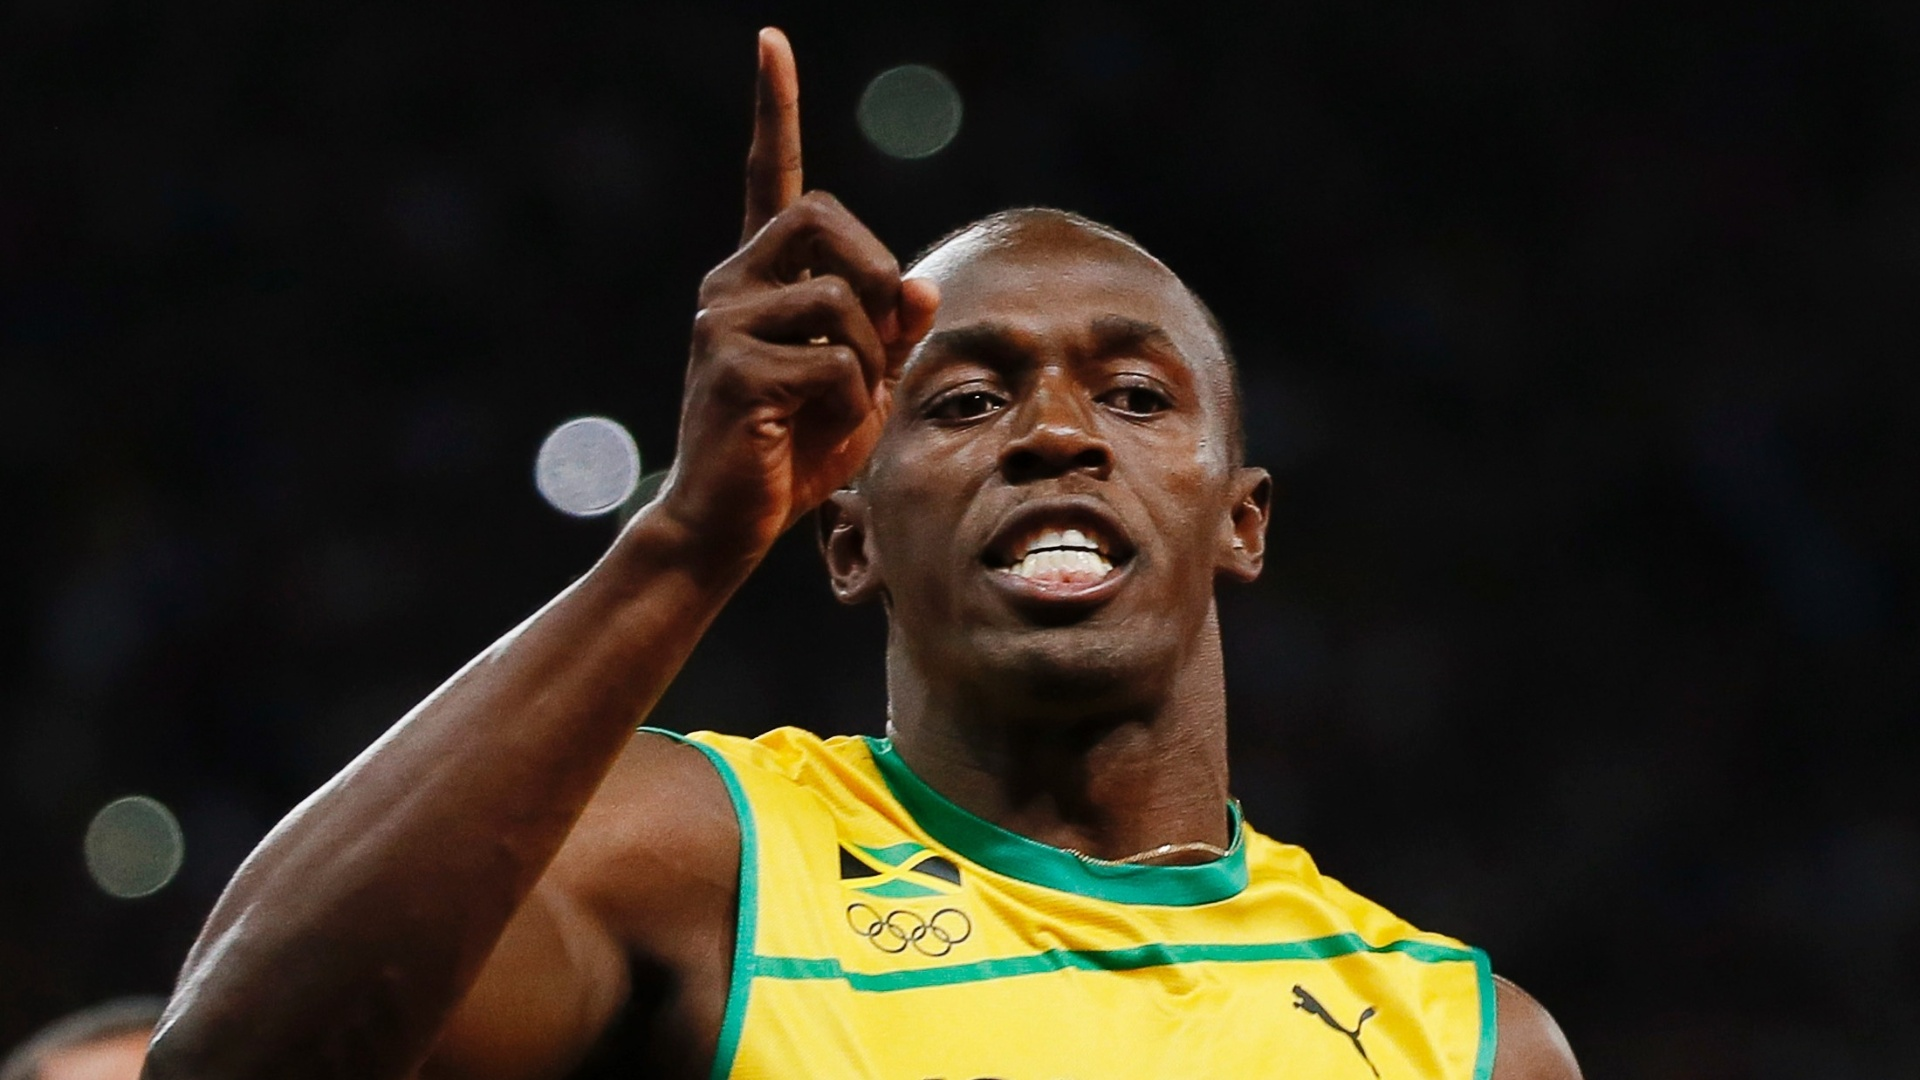 Usain Bolt comemora o ouro nos 100 m rasos em Londres-2012